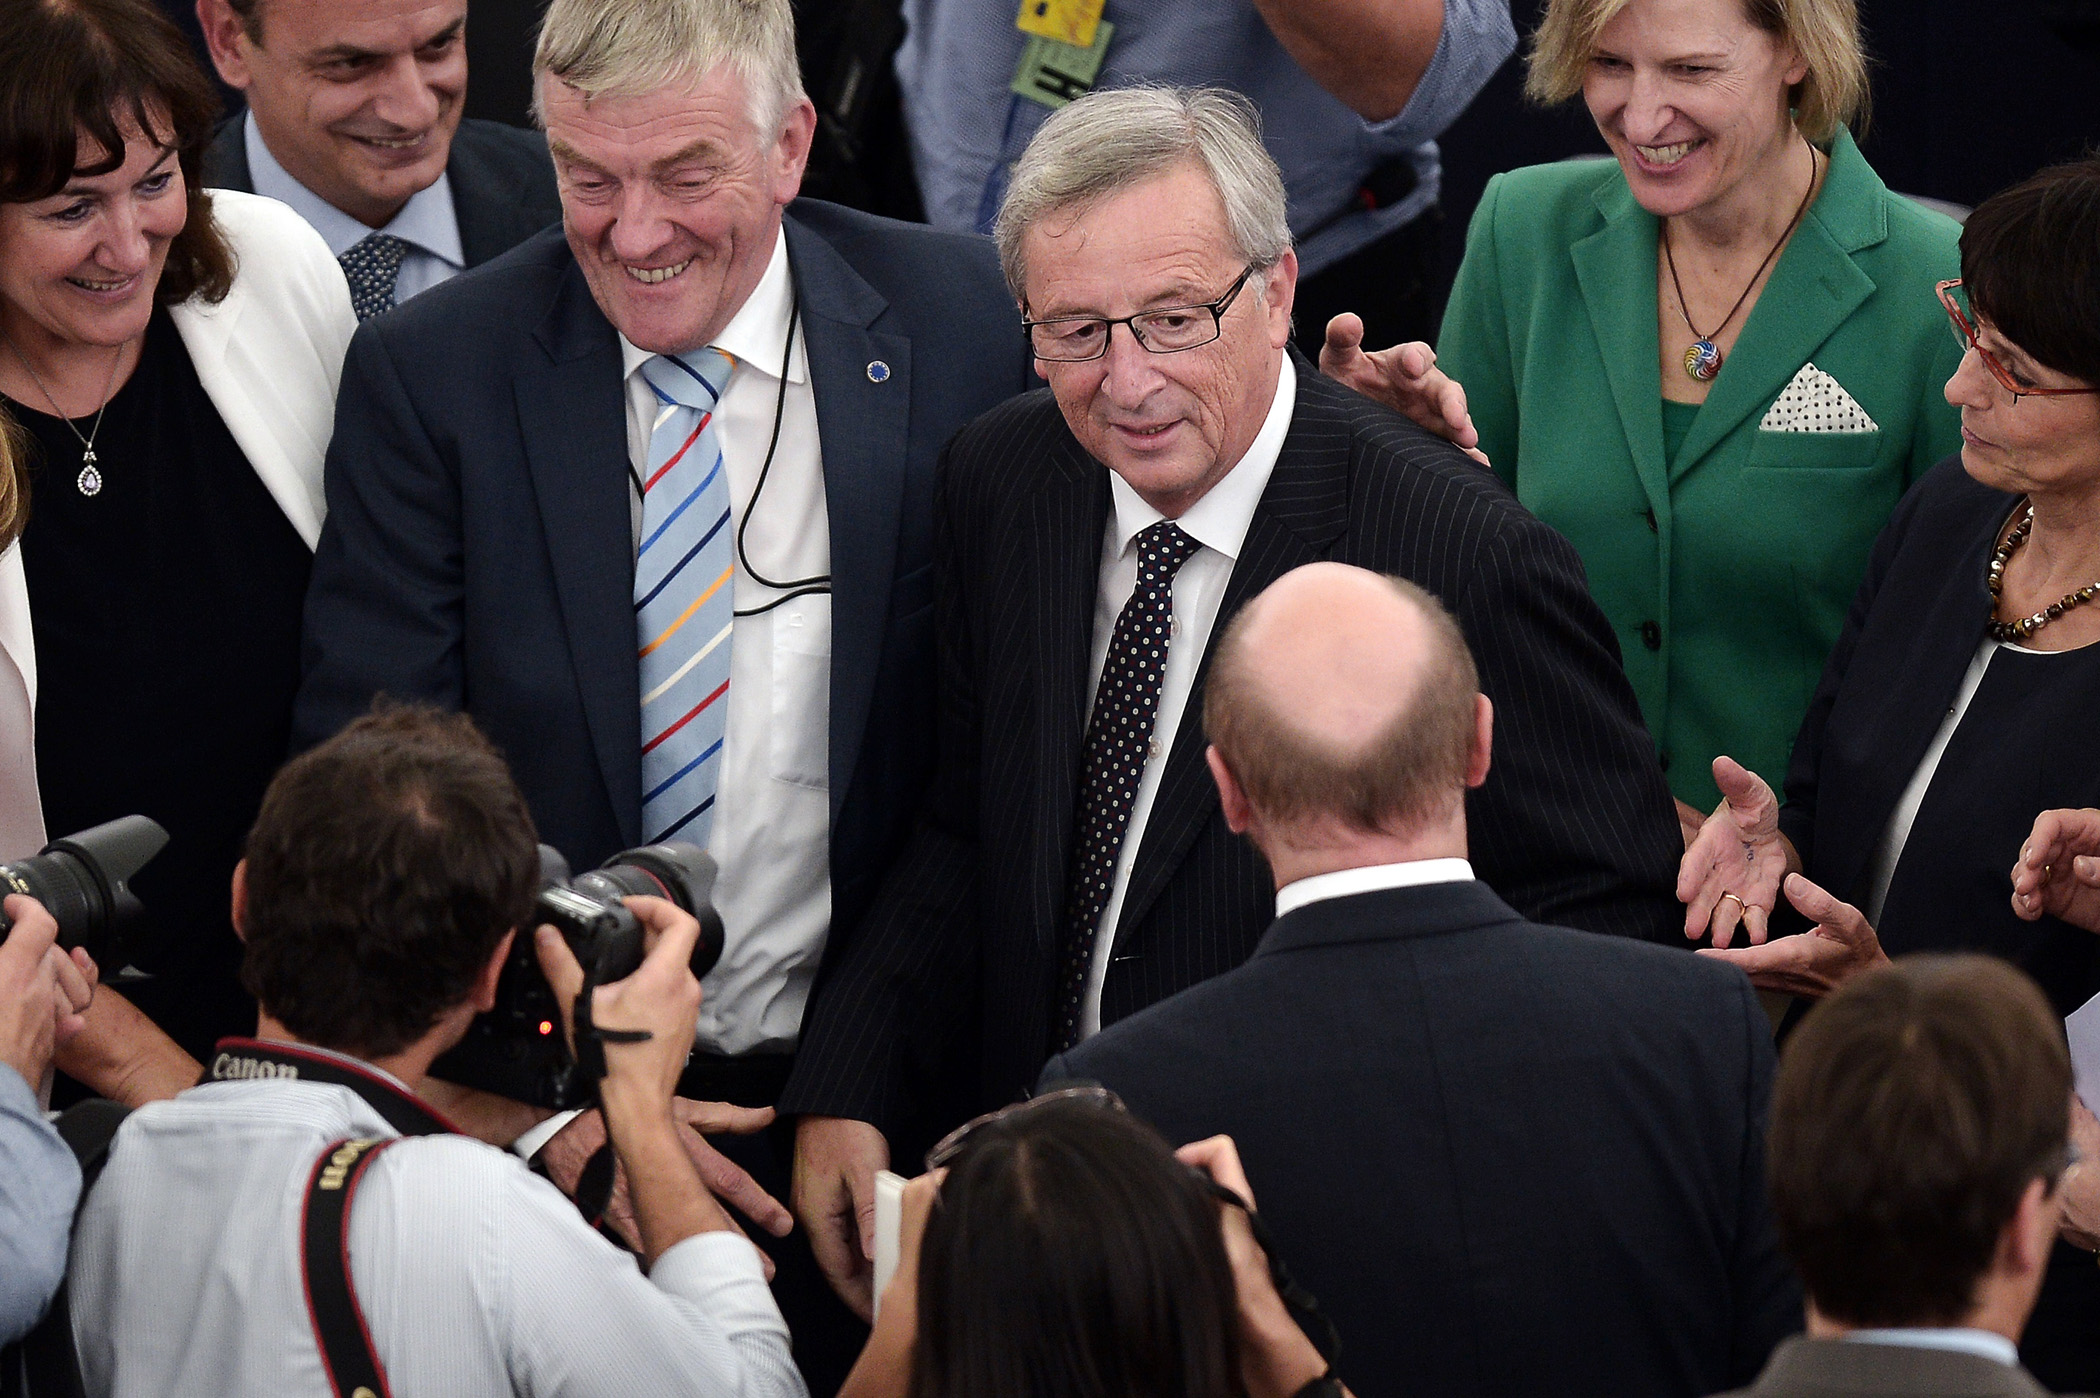 Newly elected President of the European Commission, Jean-Claude Juncker is congratulated  on July 15, 2014, in the European Parliament in Strasbourg, France.